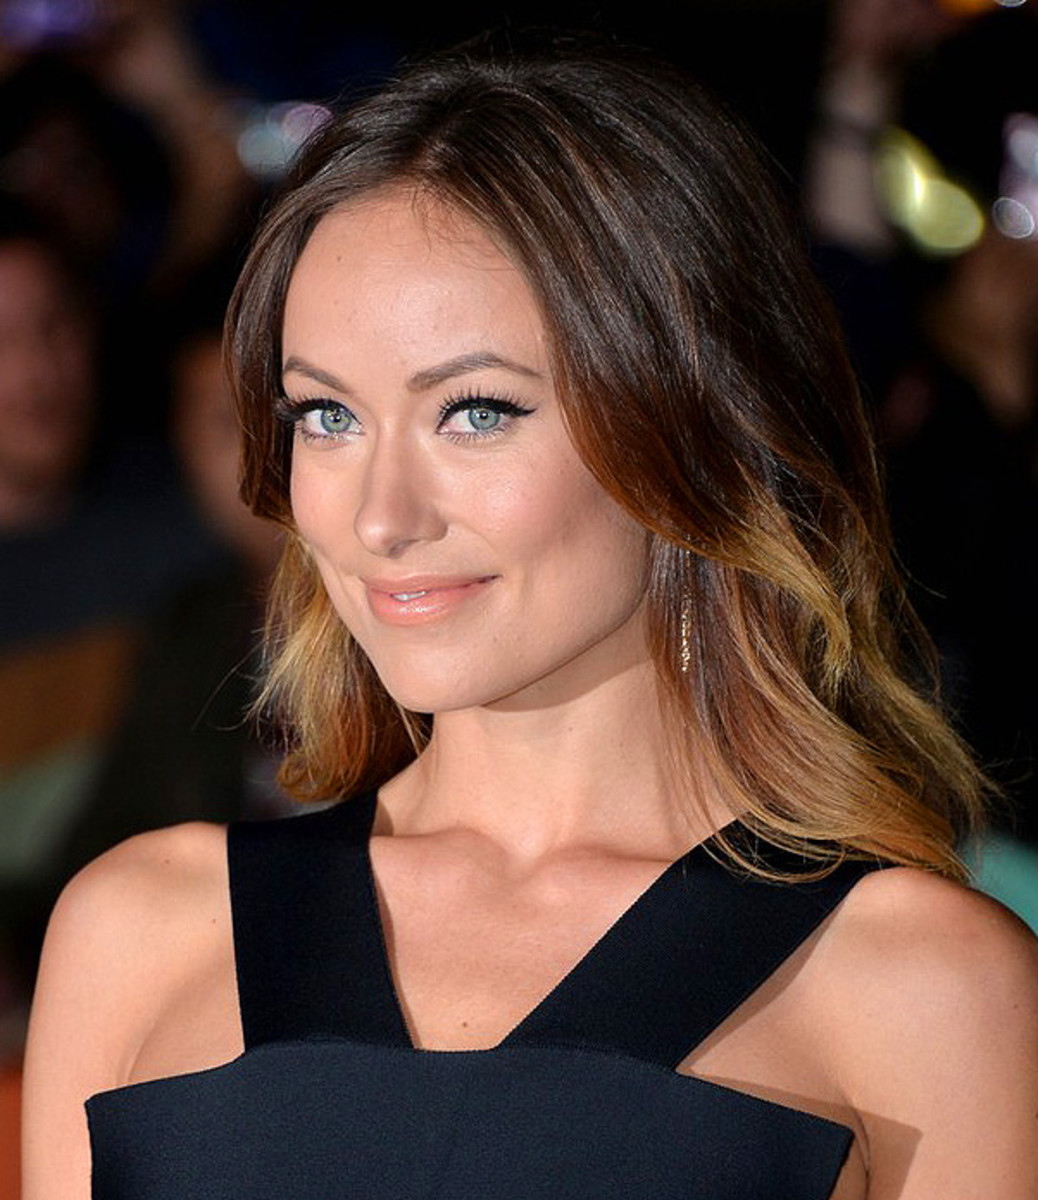 Olivia Wilde TIFF 2013 makeup by Melanie Inglessis for Revlon_Rush premiere red carpet